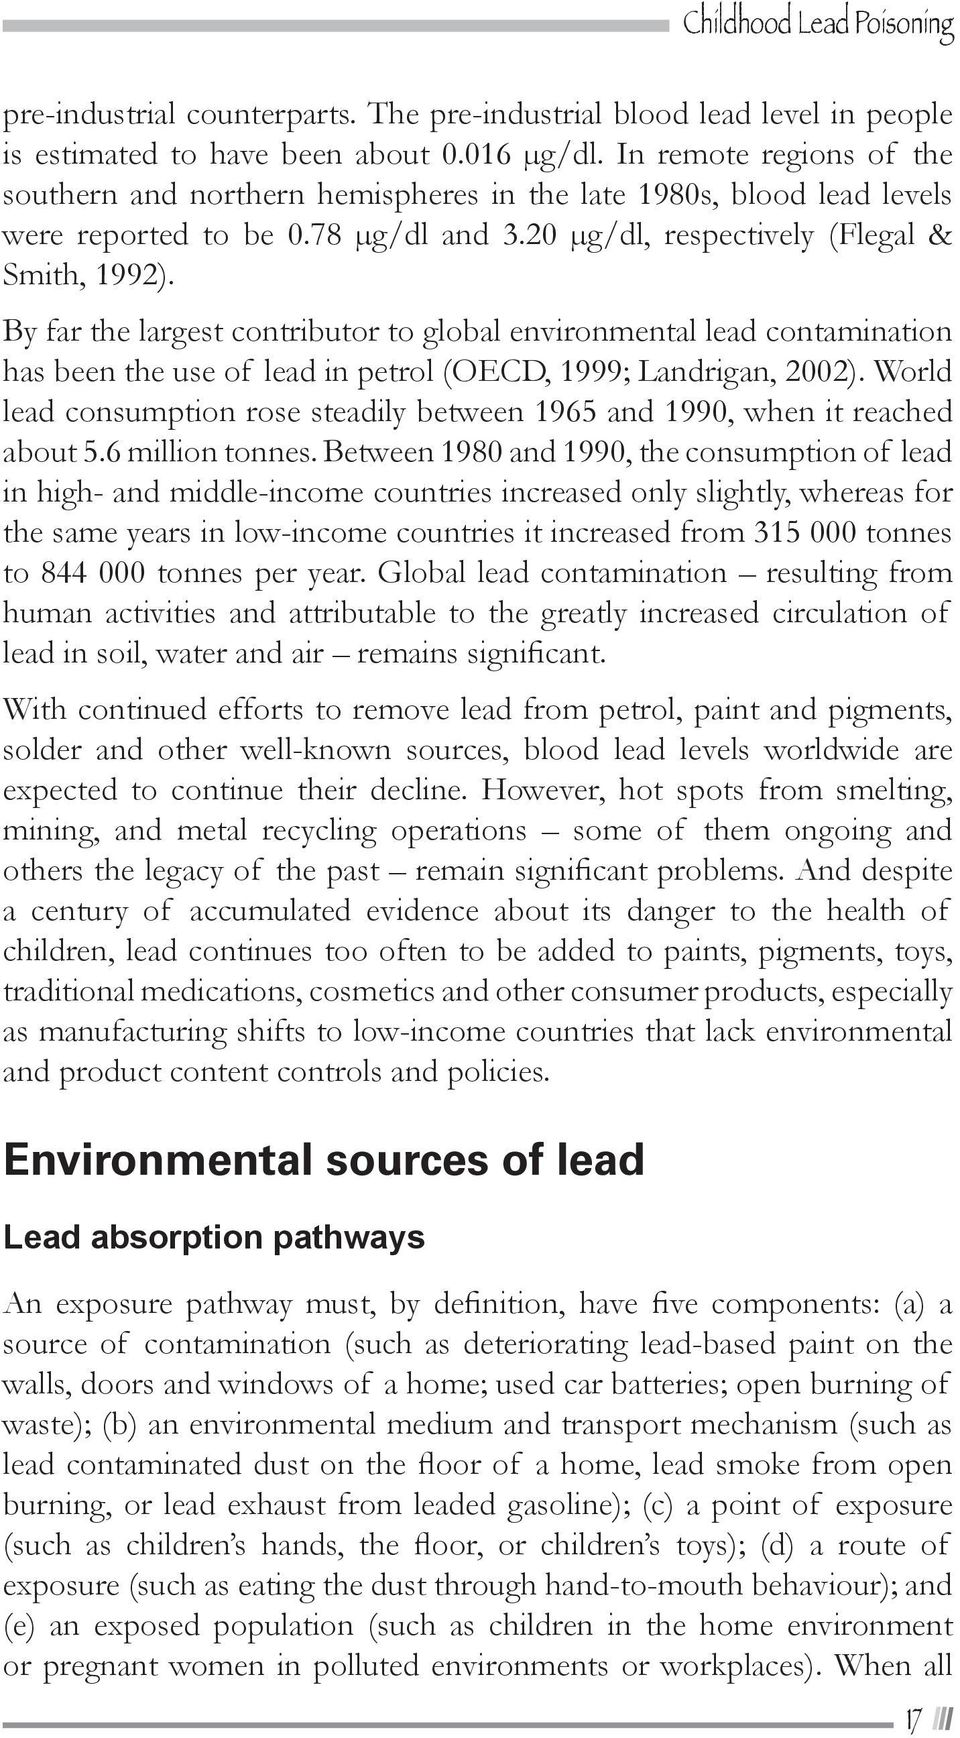 By far the argest contributor to goba environmenta ead contamination has been the use of ead in petro (OECD, 1999; Landrigan, 2002).